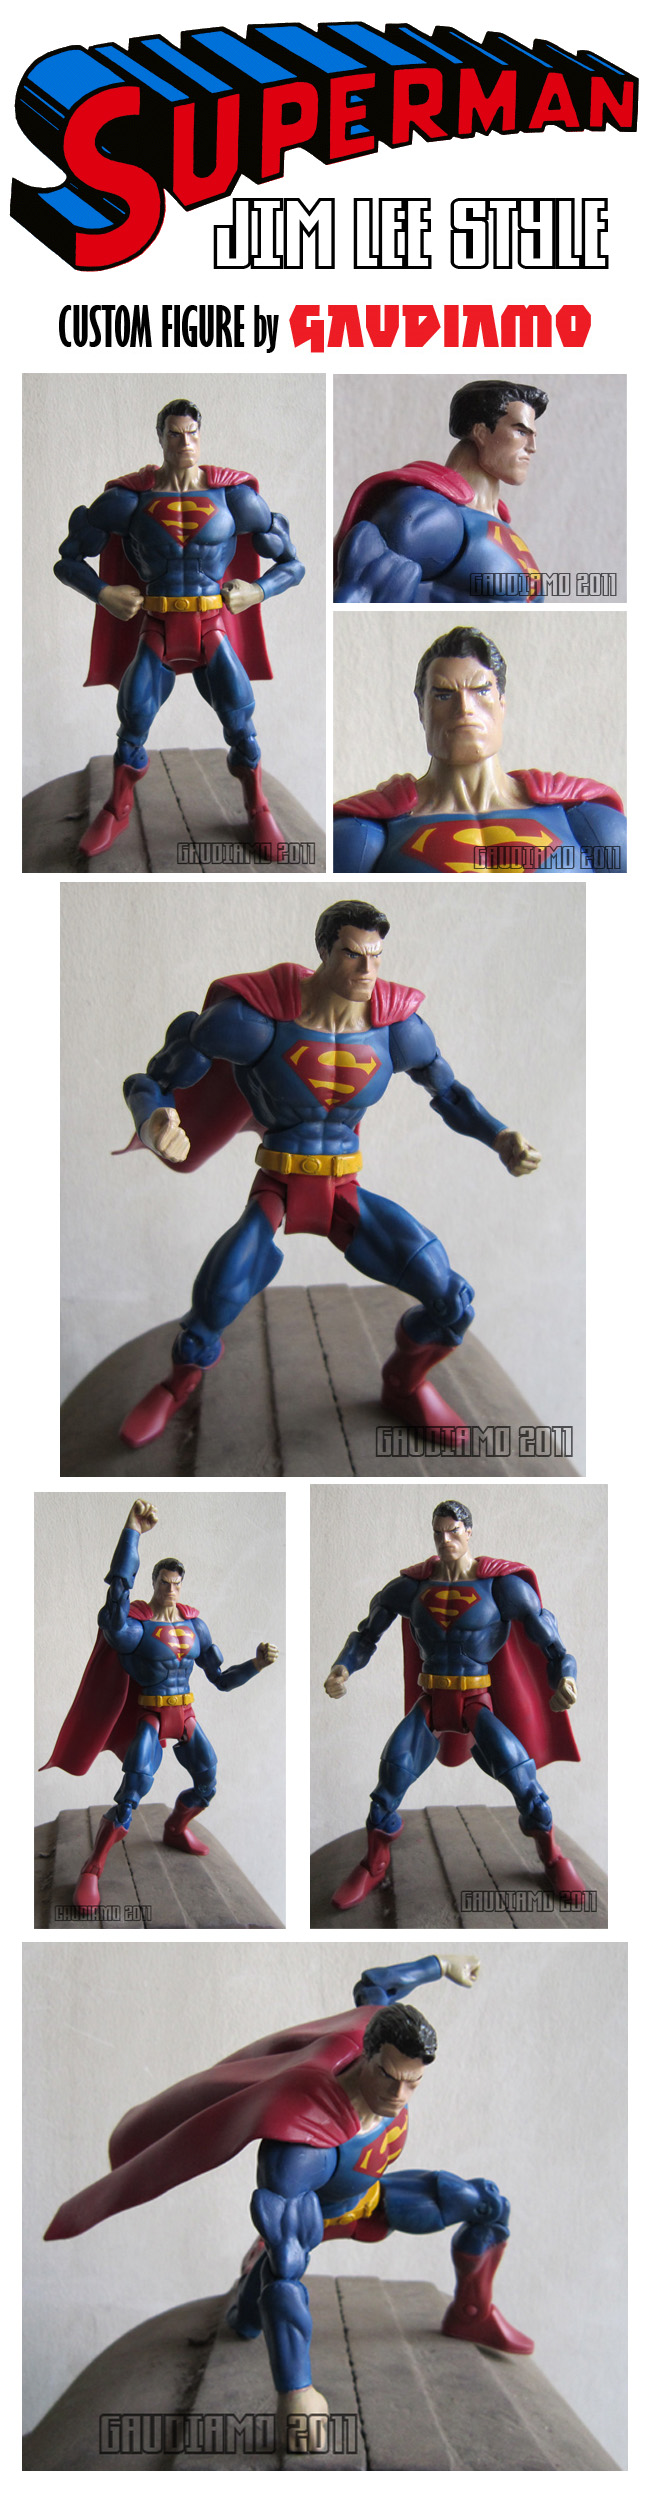 Superman custom figure by gaudiamo